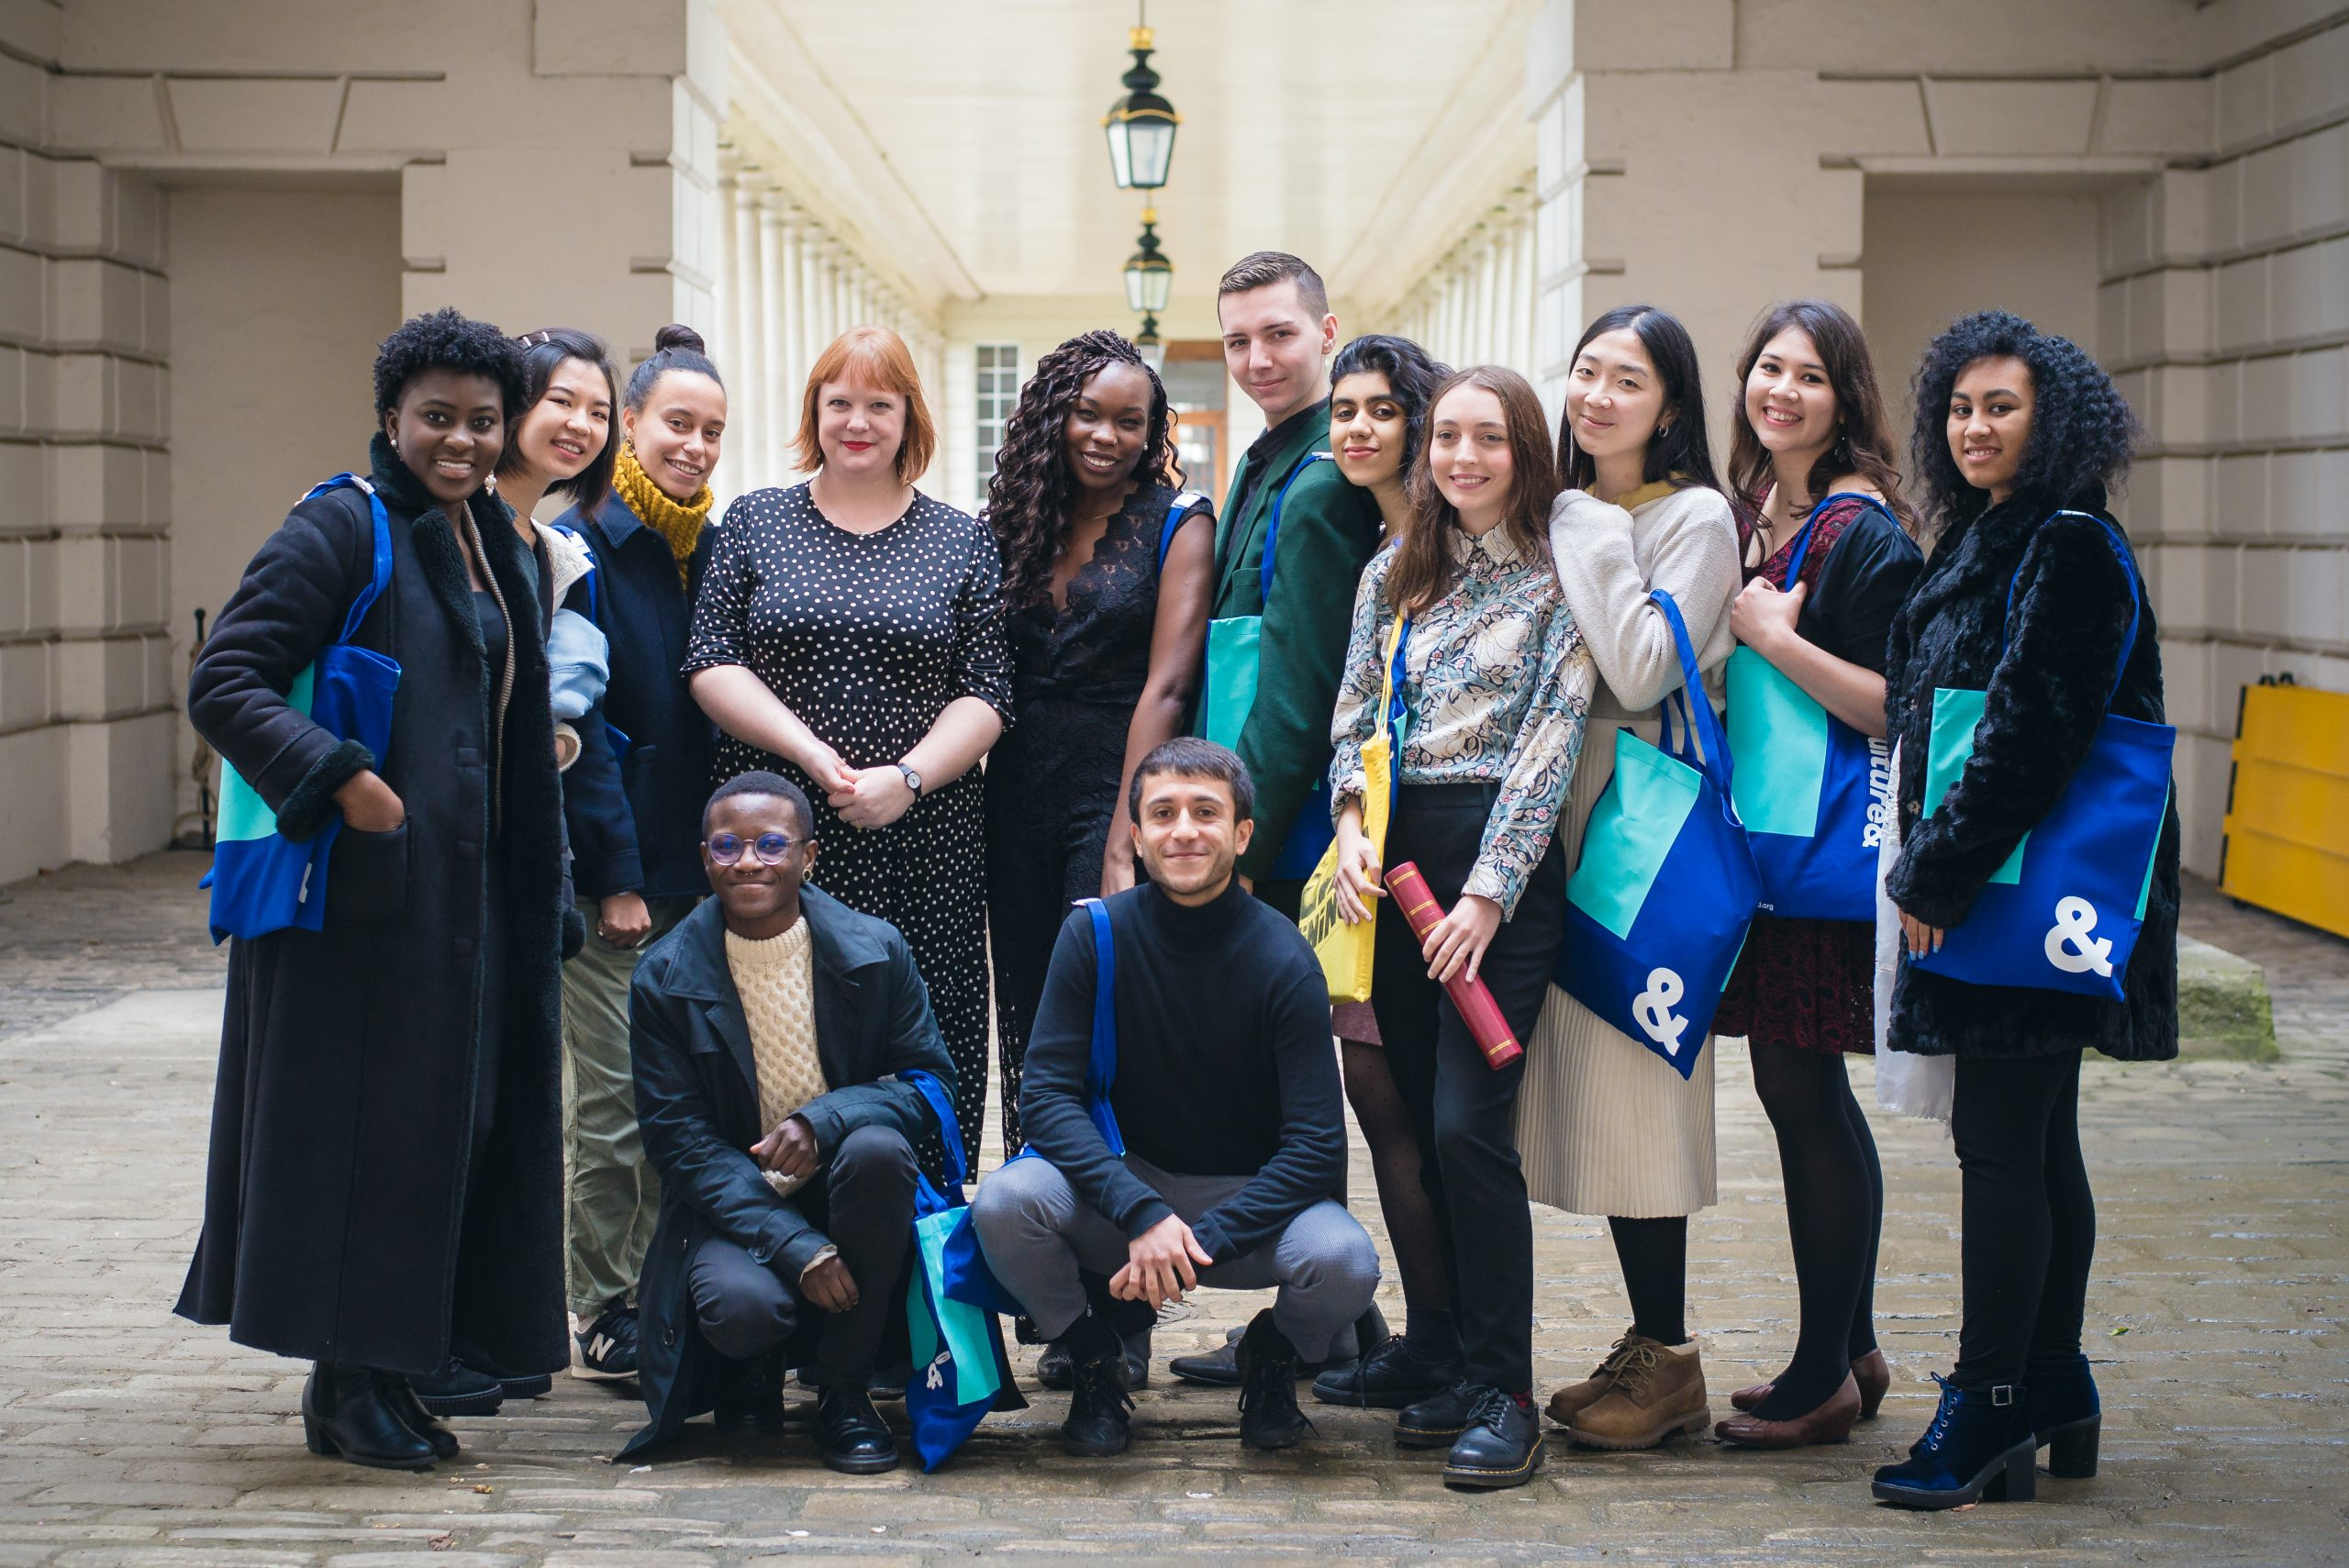 Recent graduates from the training programme developed by Culture&